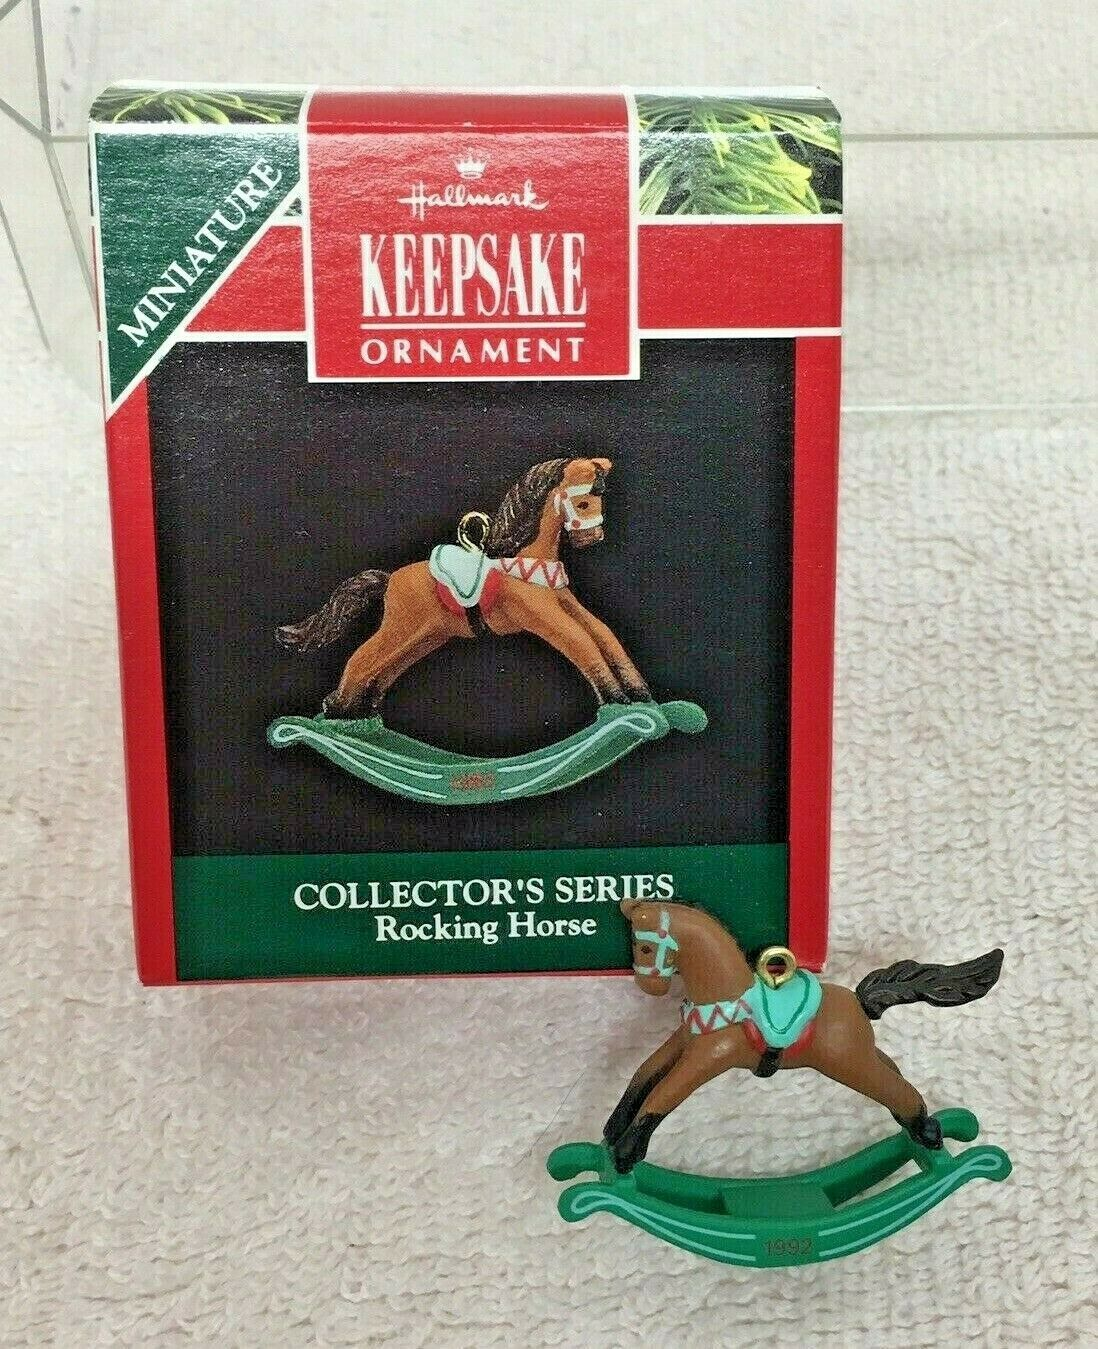 Primary image for 1992 Rocking Horse #5 Miniature Hallmark Christmas Tree Ornament MIB w Price Tag